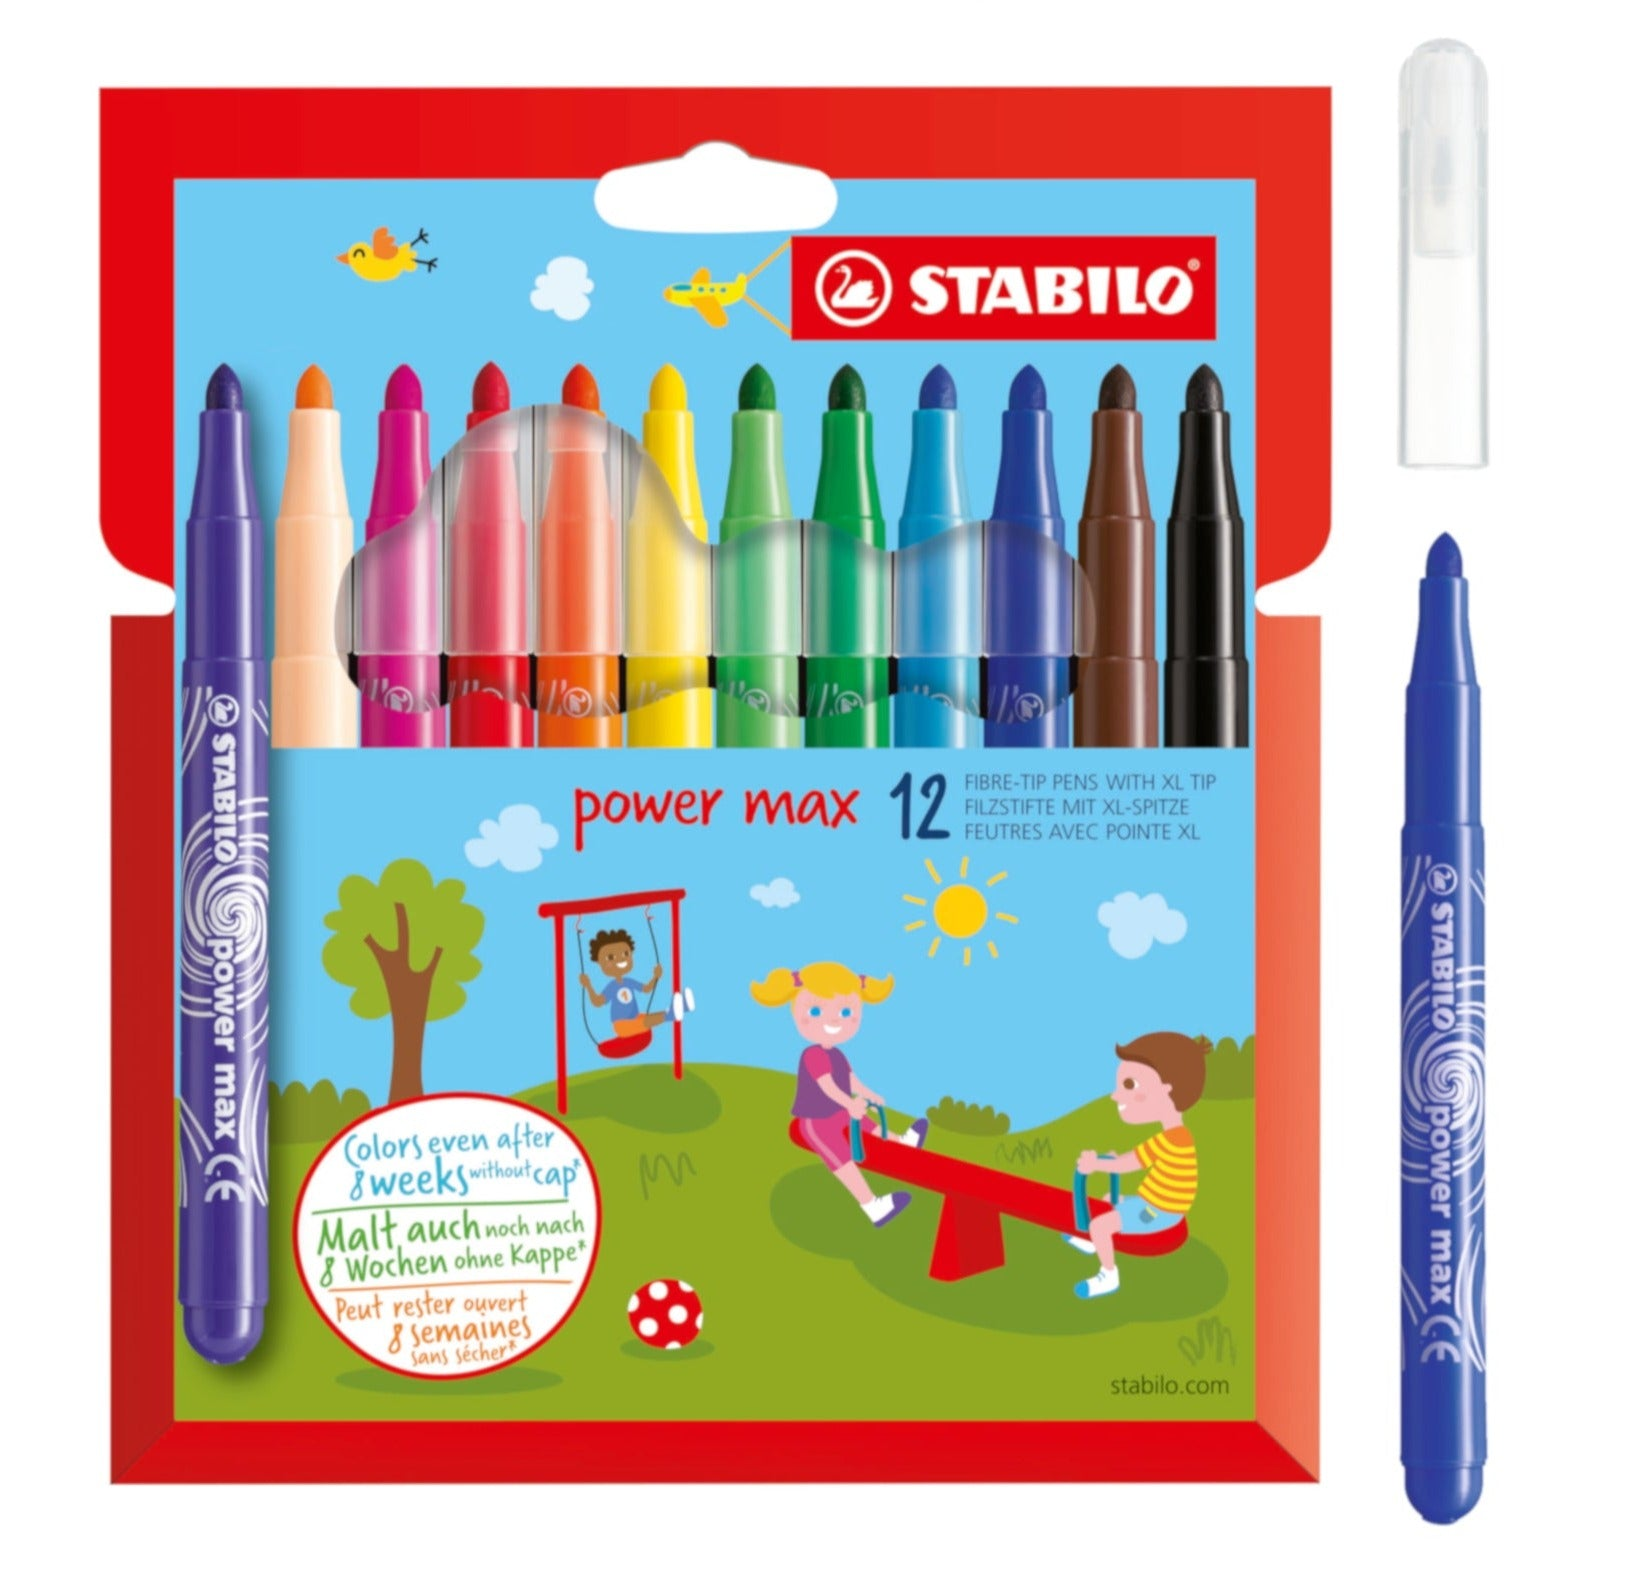 STABILO Power Max Extra-Thick Fibre-Tip Pen - Set of 12 colours